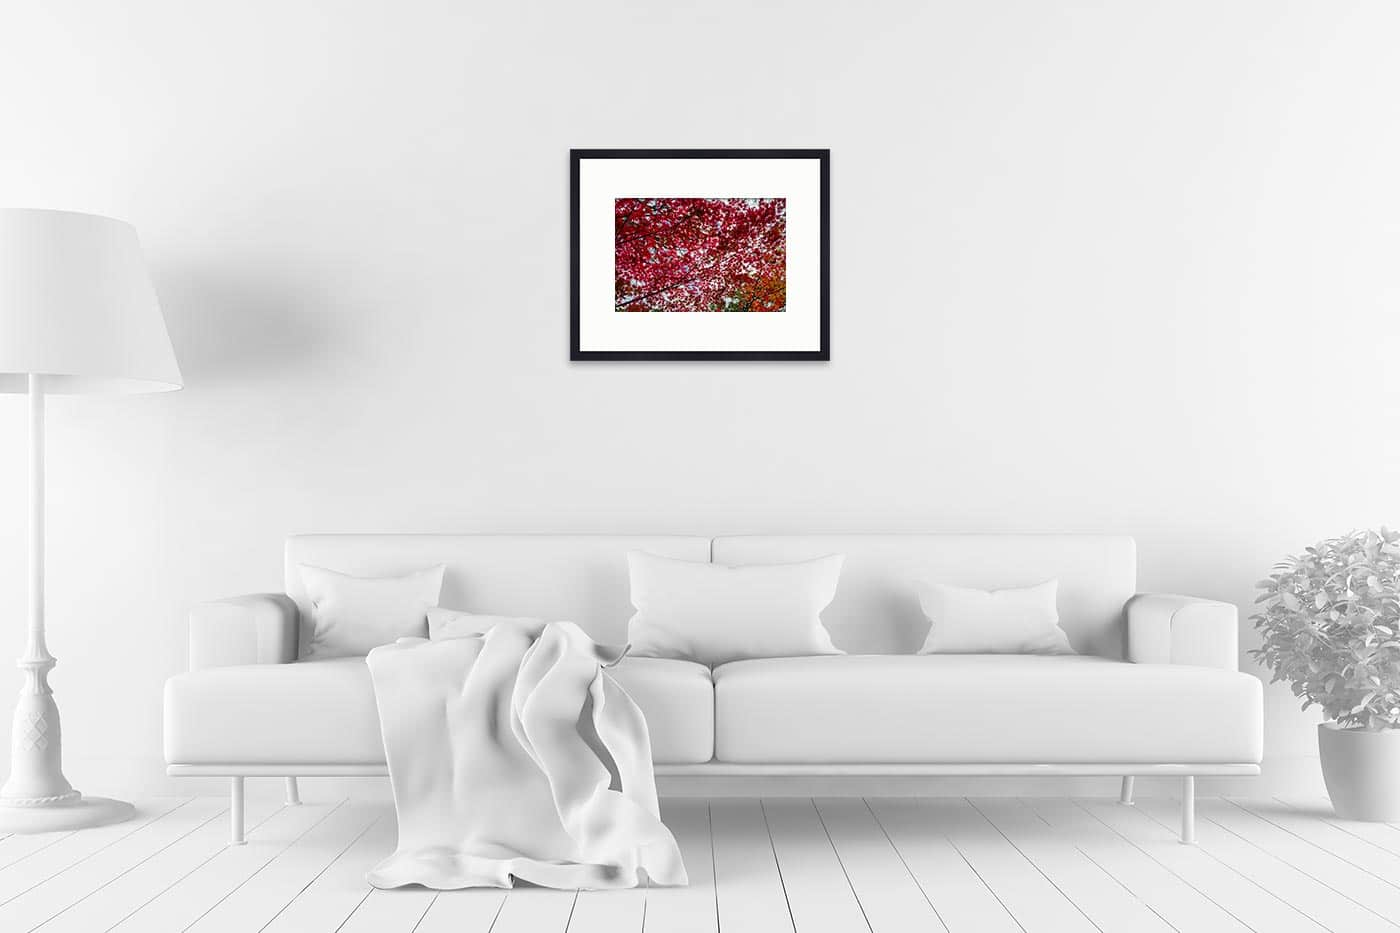 Cadre expo 40x50 Small red tree leaves